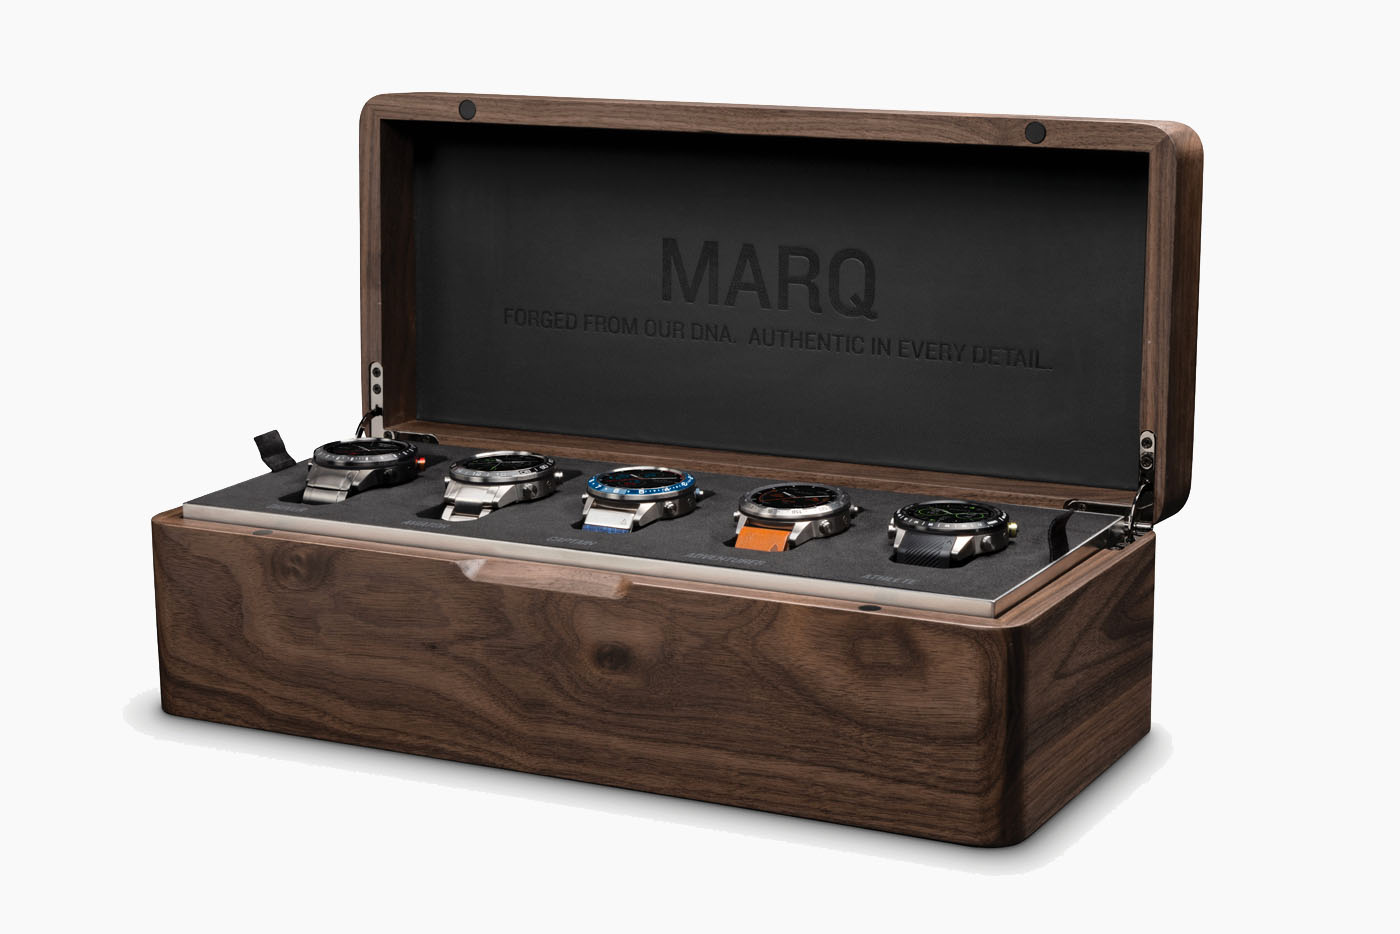 Garmin Marq Watch Set